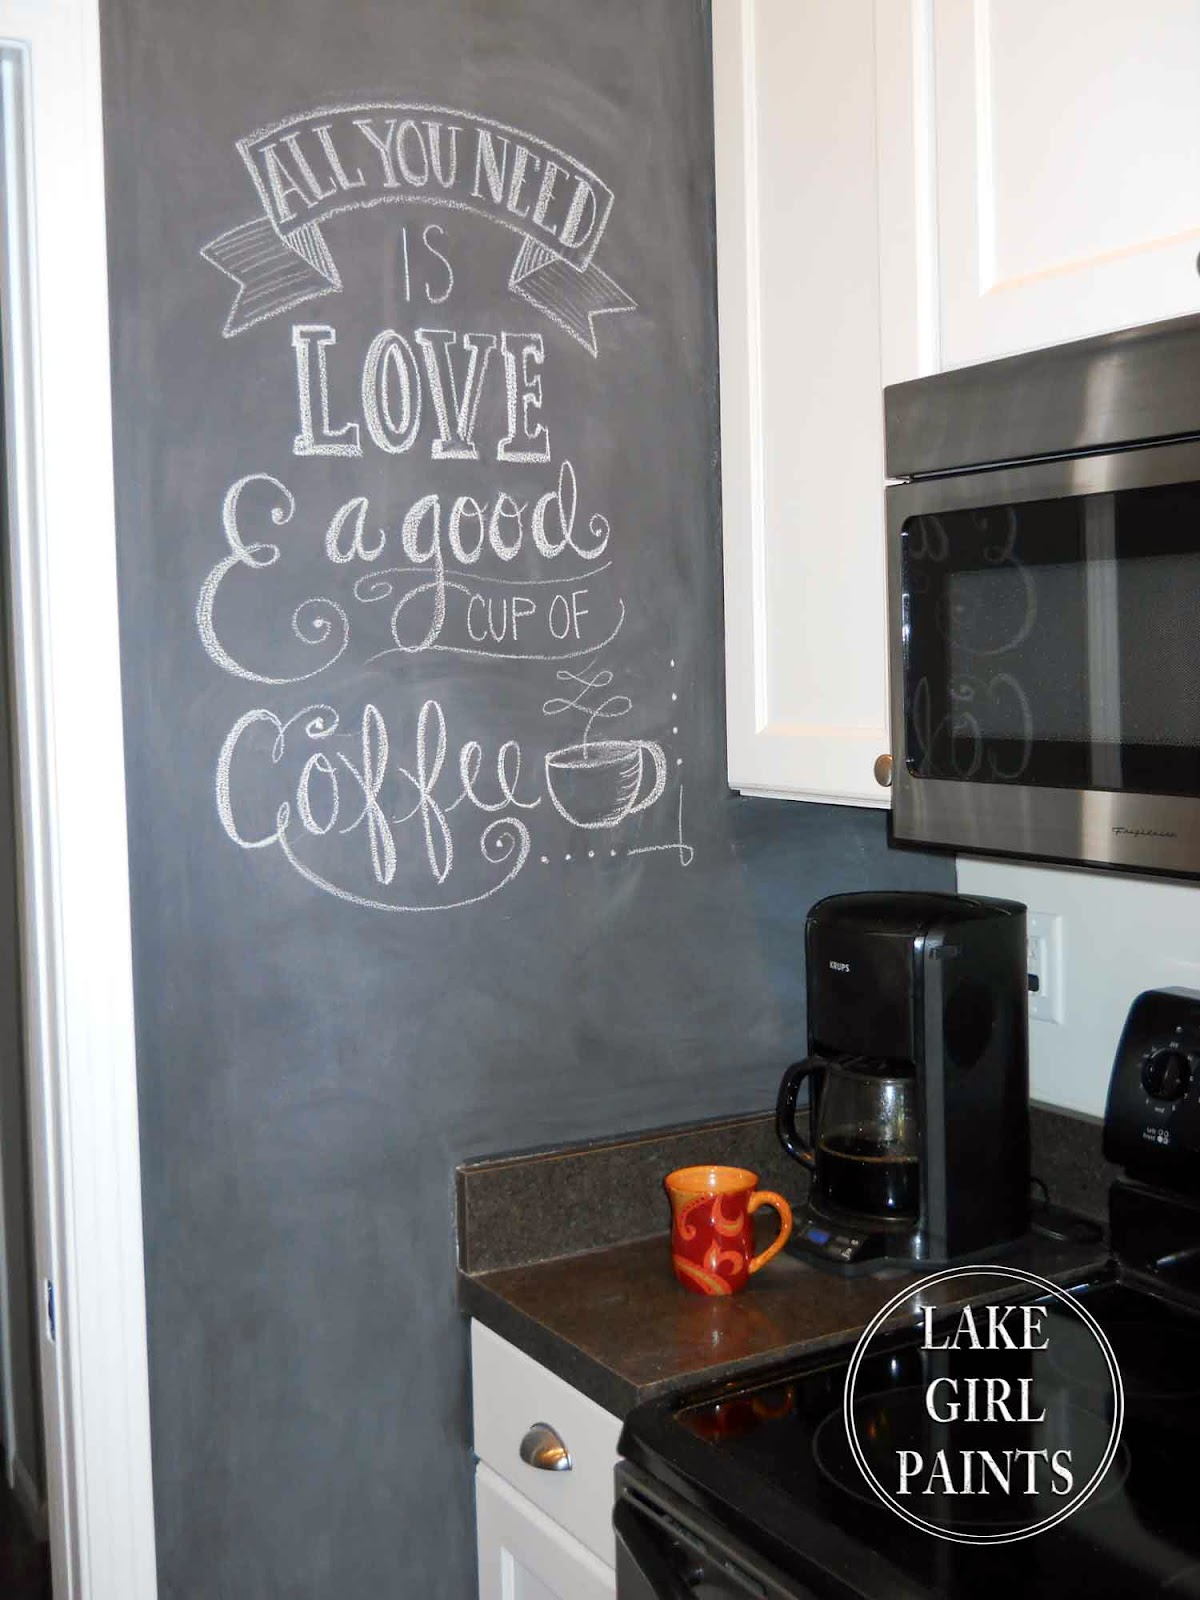 Lake Girl Paints: Painting My Kitchen Wall with Chalkboard